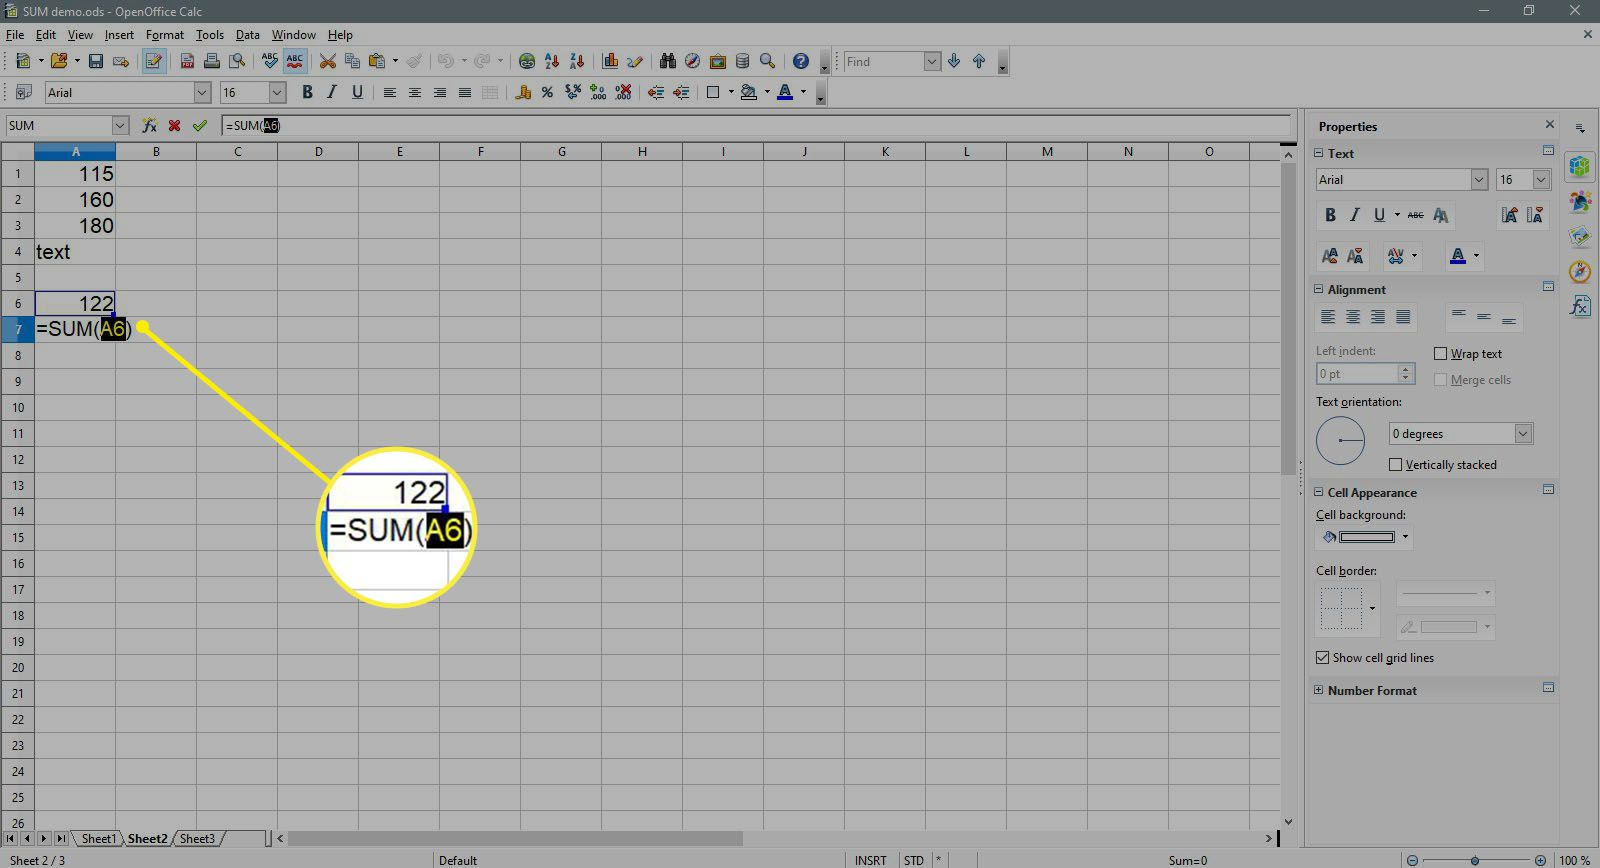 Building a SUM formula with cell A6 highlighted in OpenOffice Calc.